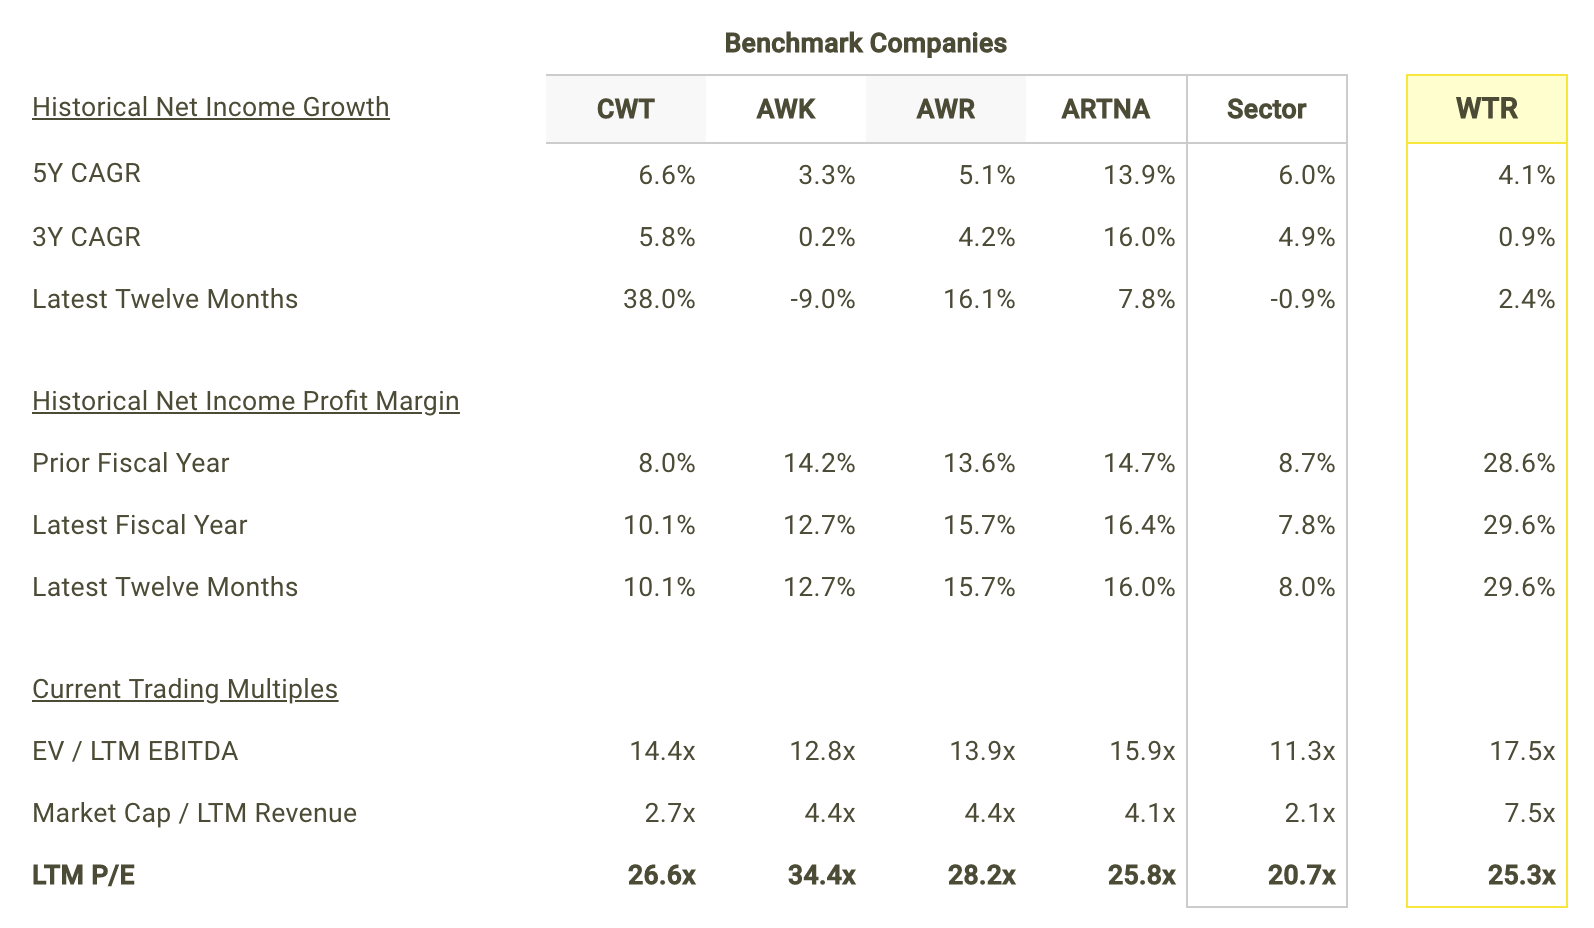 WTR Net Income Growth and Margins vs Peers Table